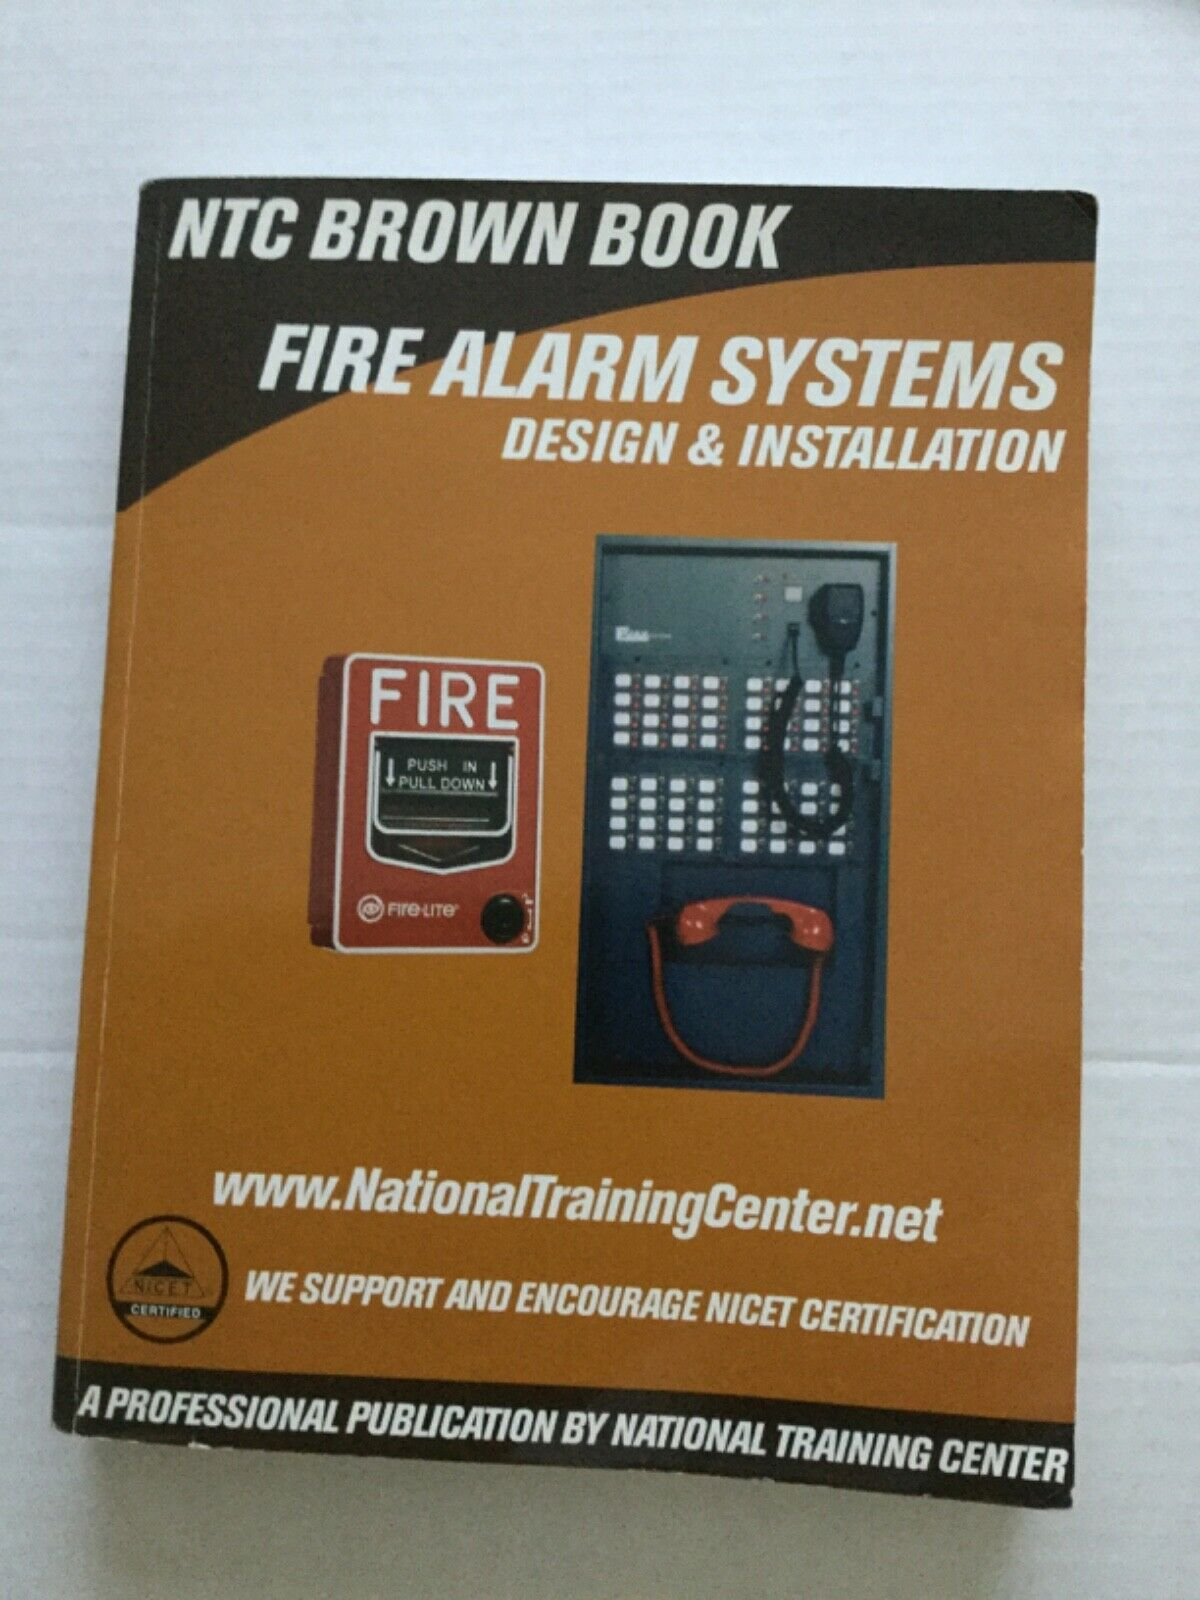 Ntc Brown Book Fire Alarm Systems Handbook Design And Installation 2005 For Sale Online Ebay